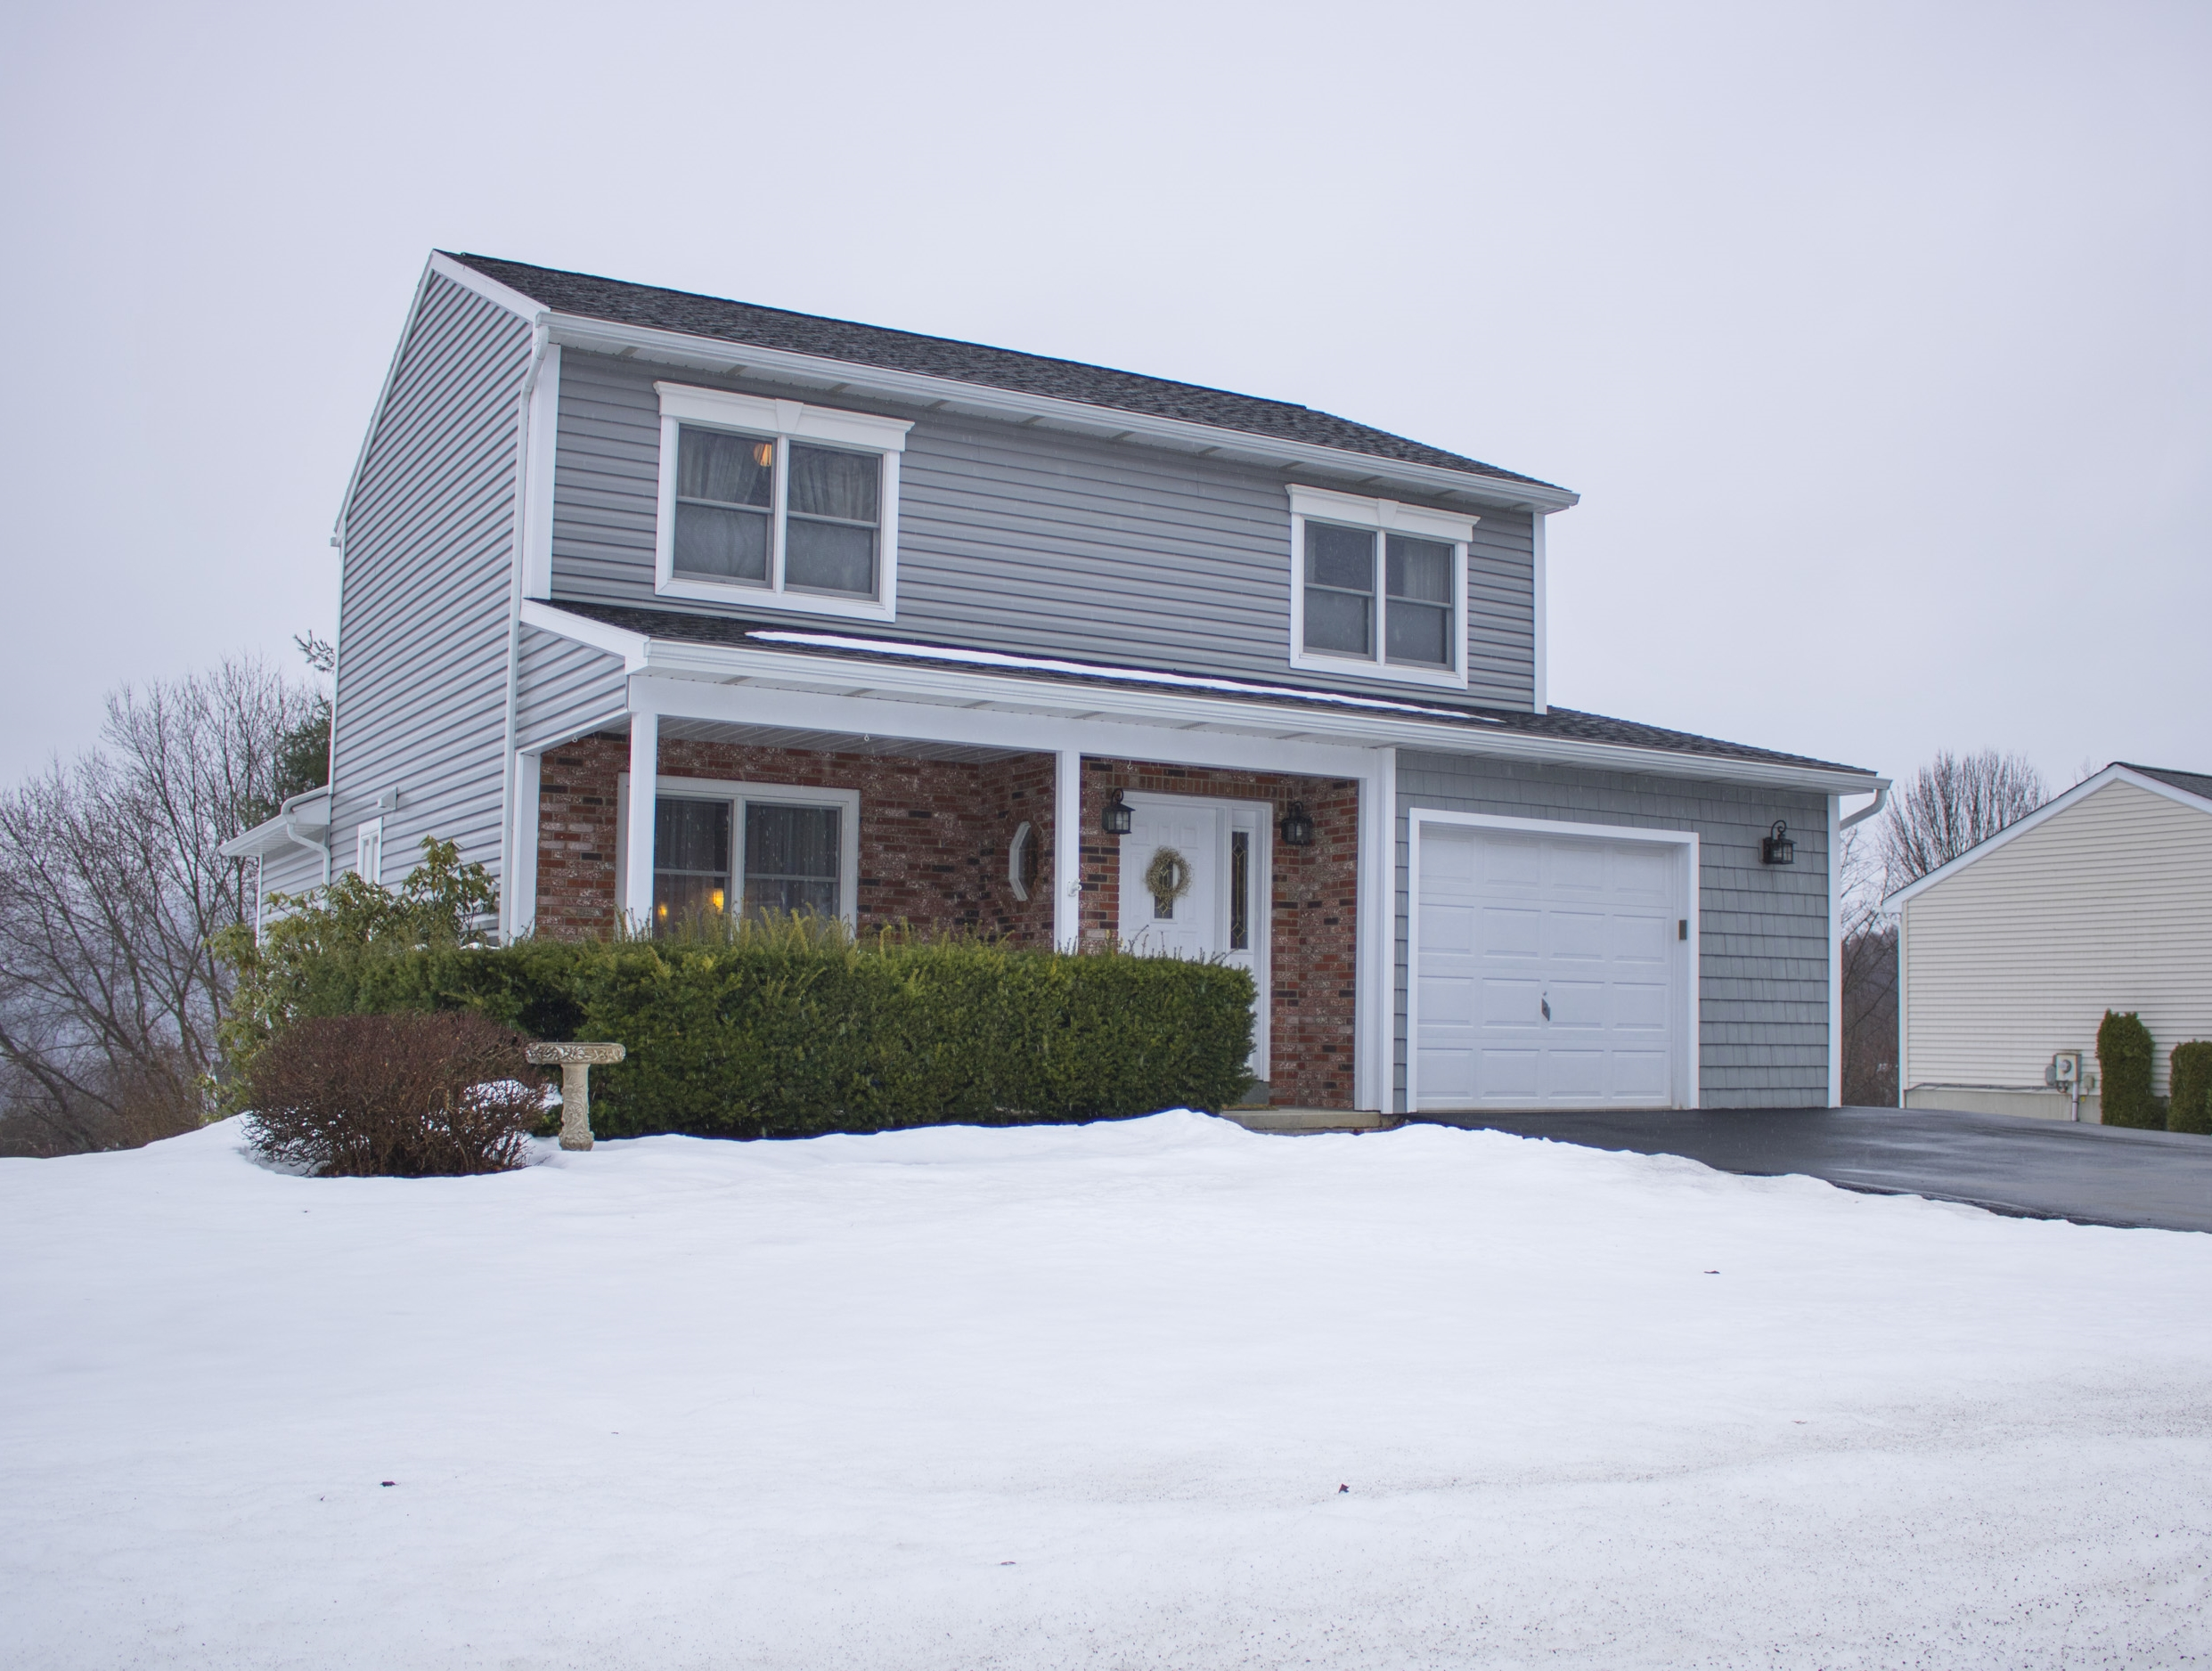 Check out this video tour of 40 Clearview Place!